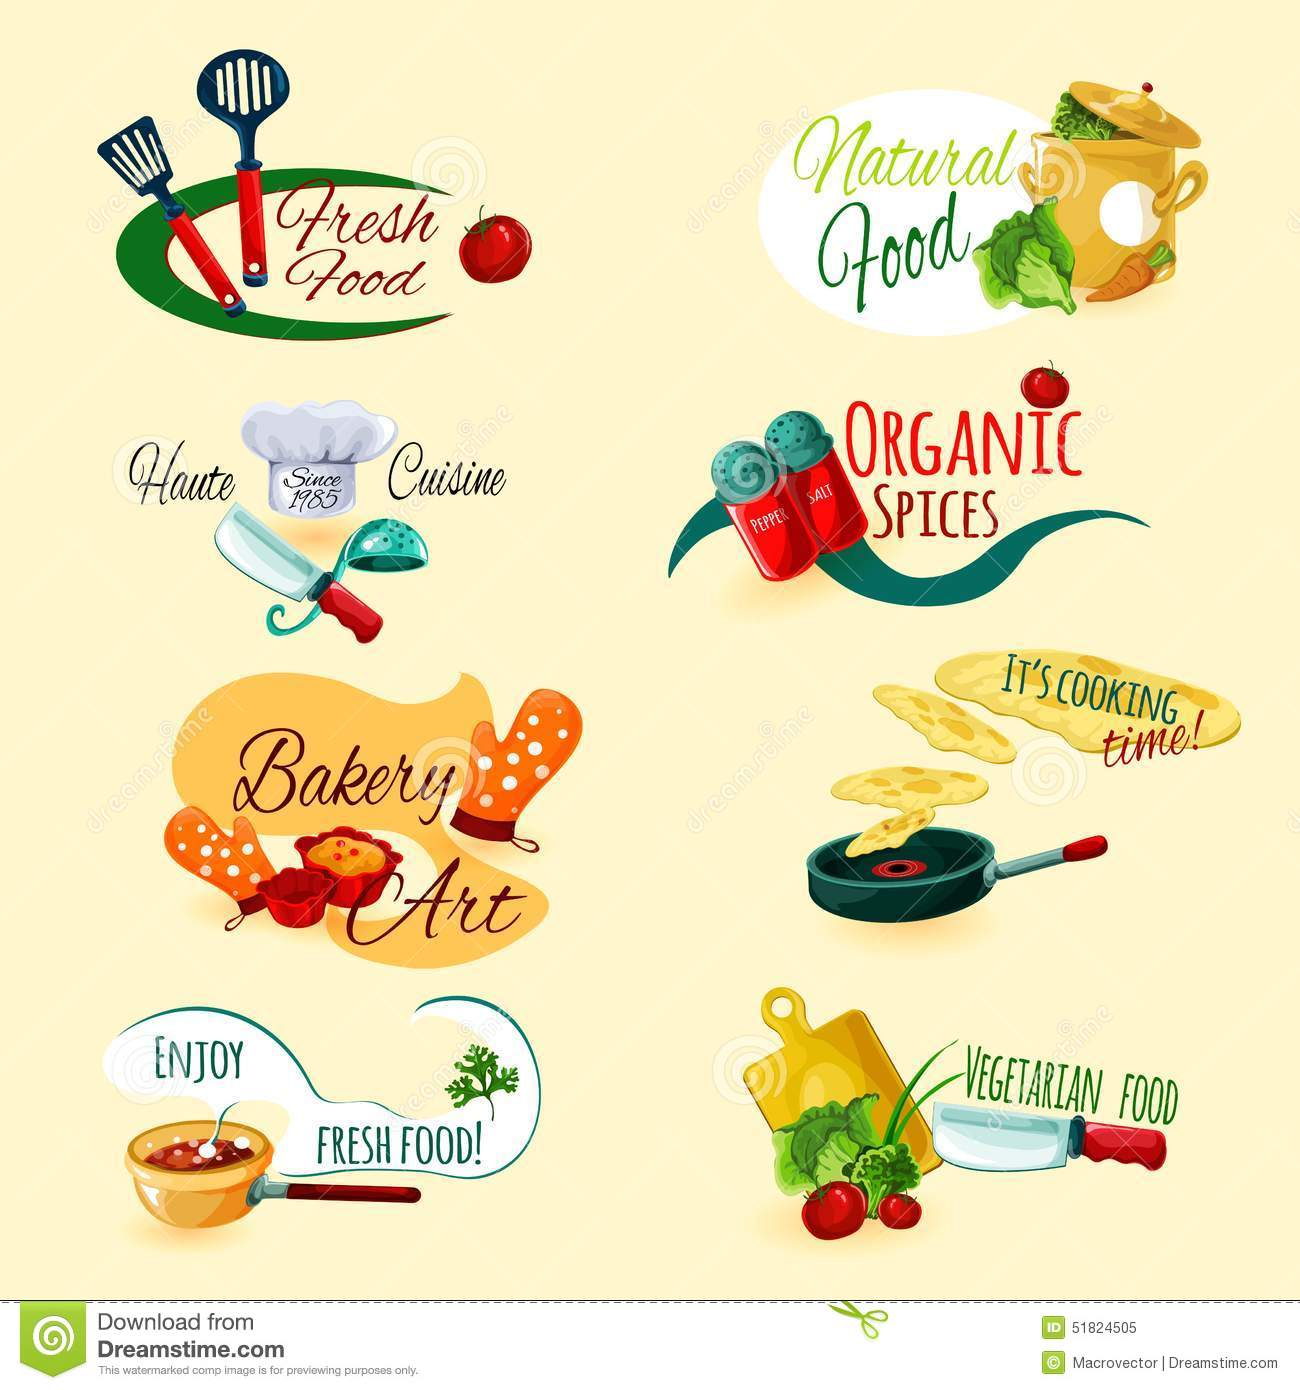 organic kitchen utensils undermount white sink cooking emblems set stock vector - image: 51824505